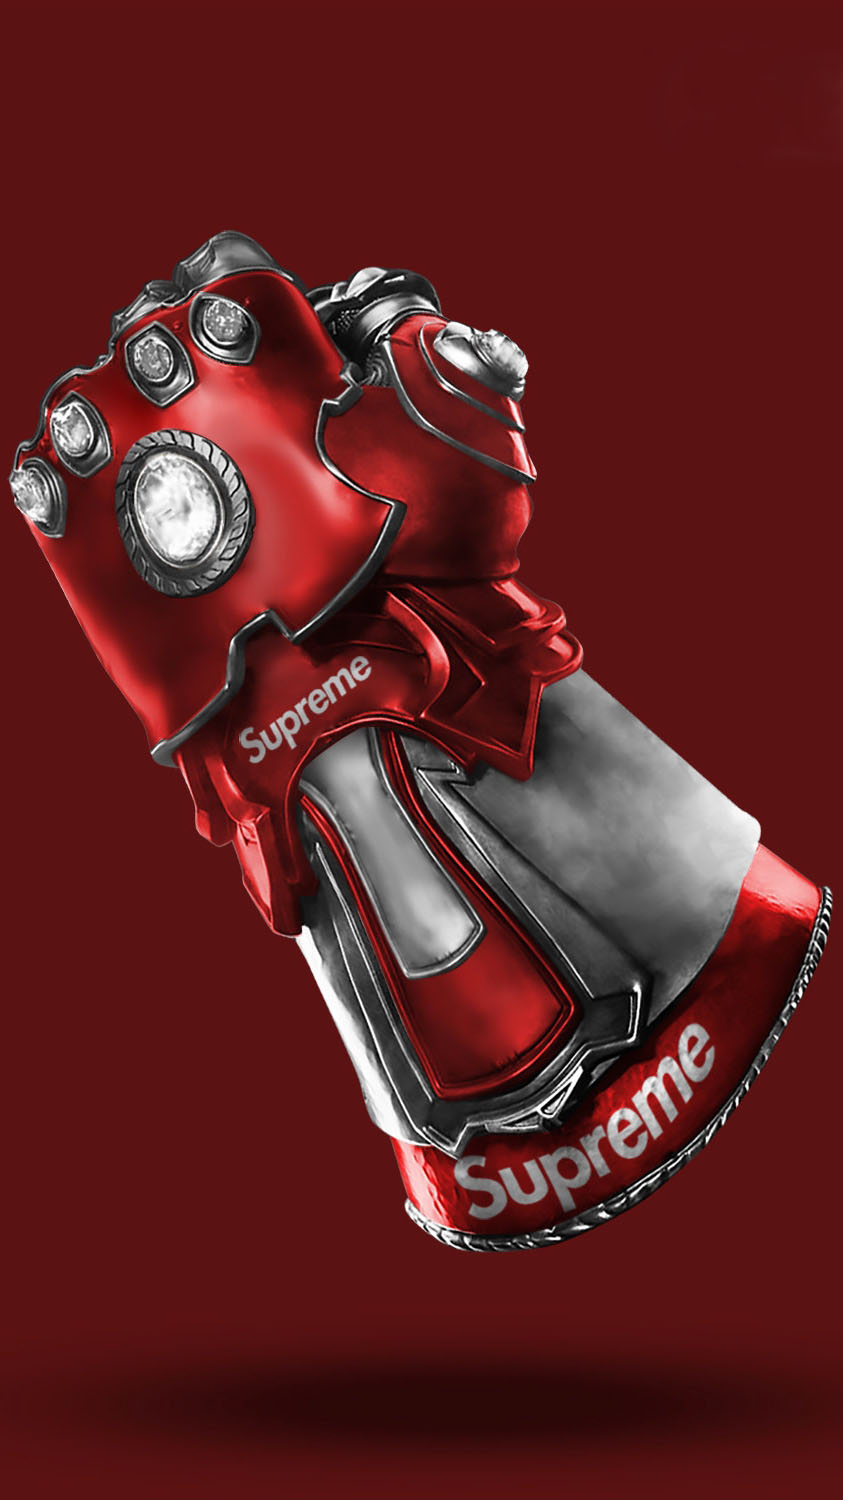 Supreme Infinity Glove iPhone Wallpaper